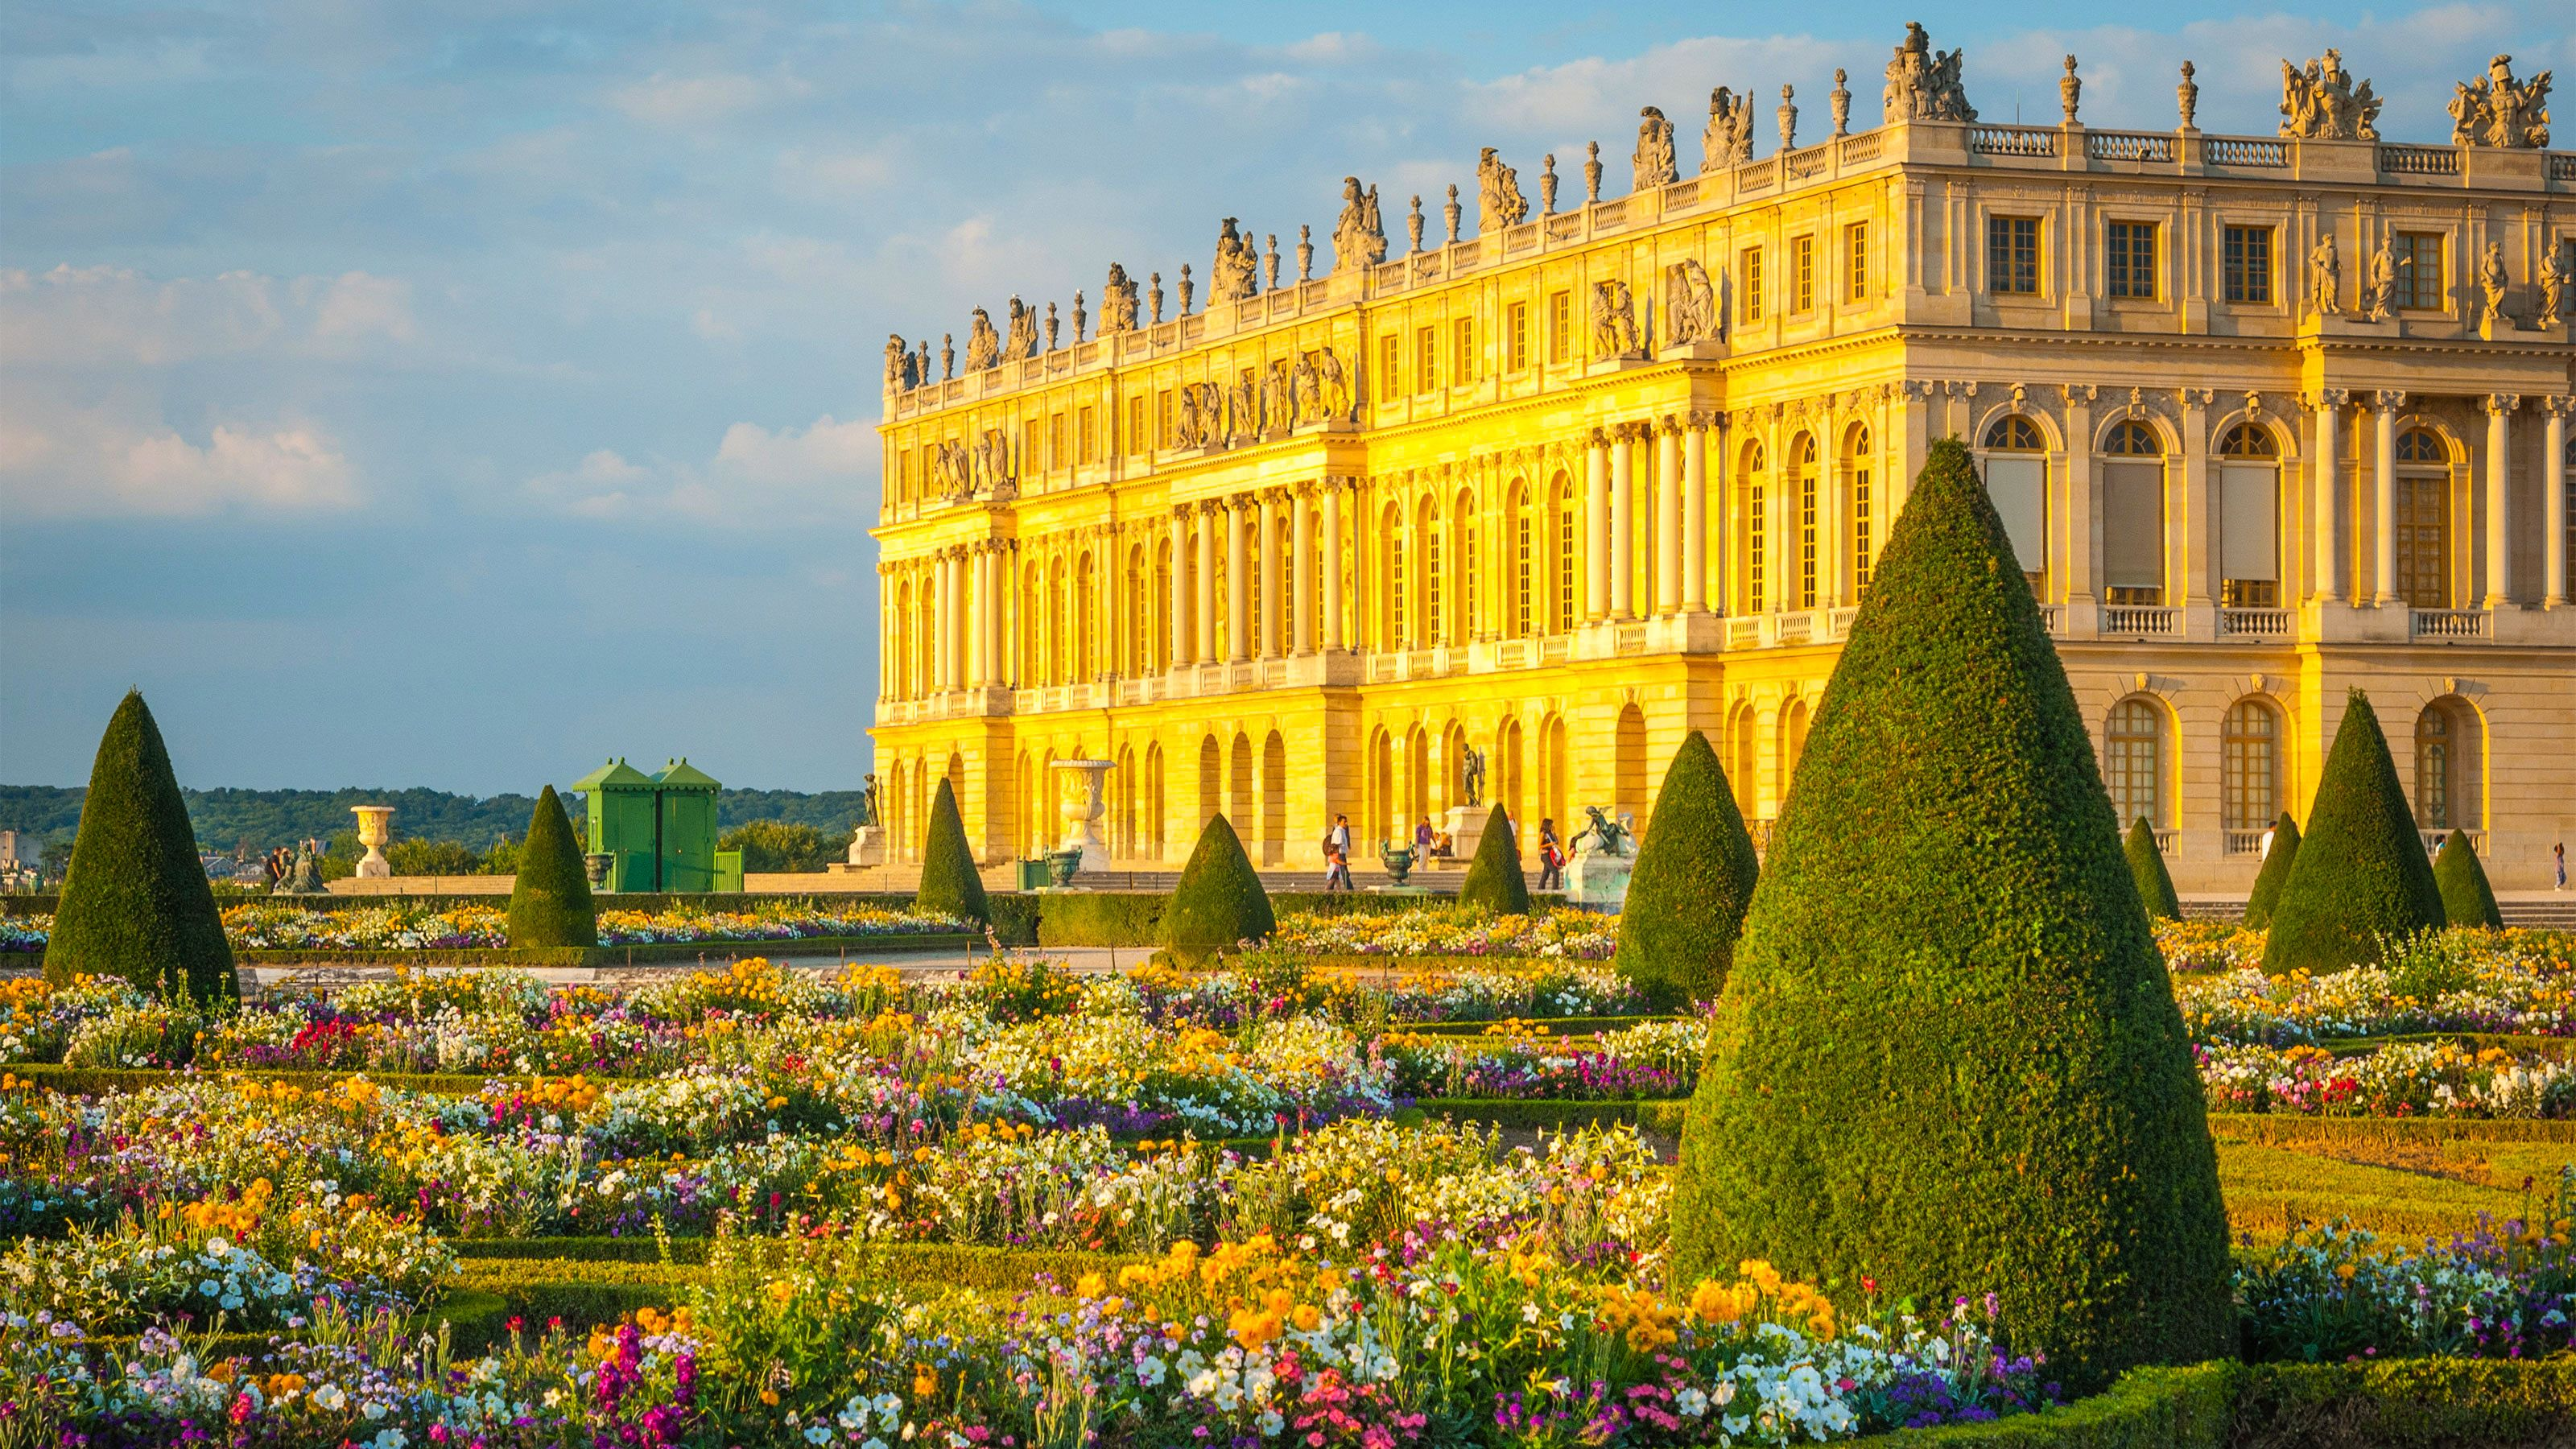 Skip-the-Line Tour of Versailles & the Louvre with Lunch